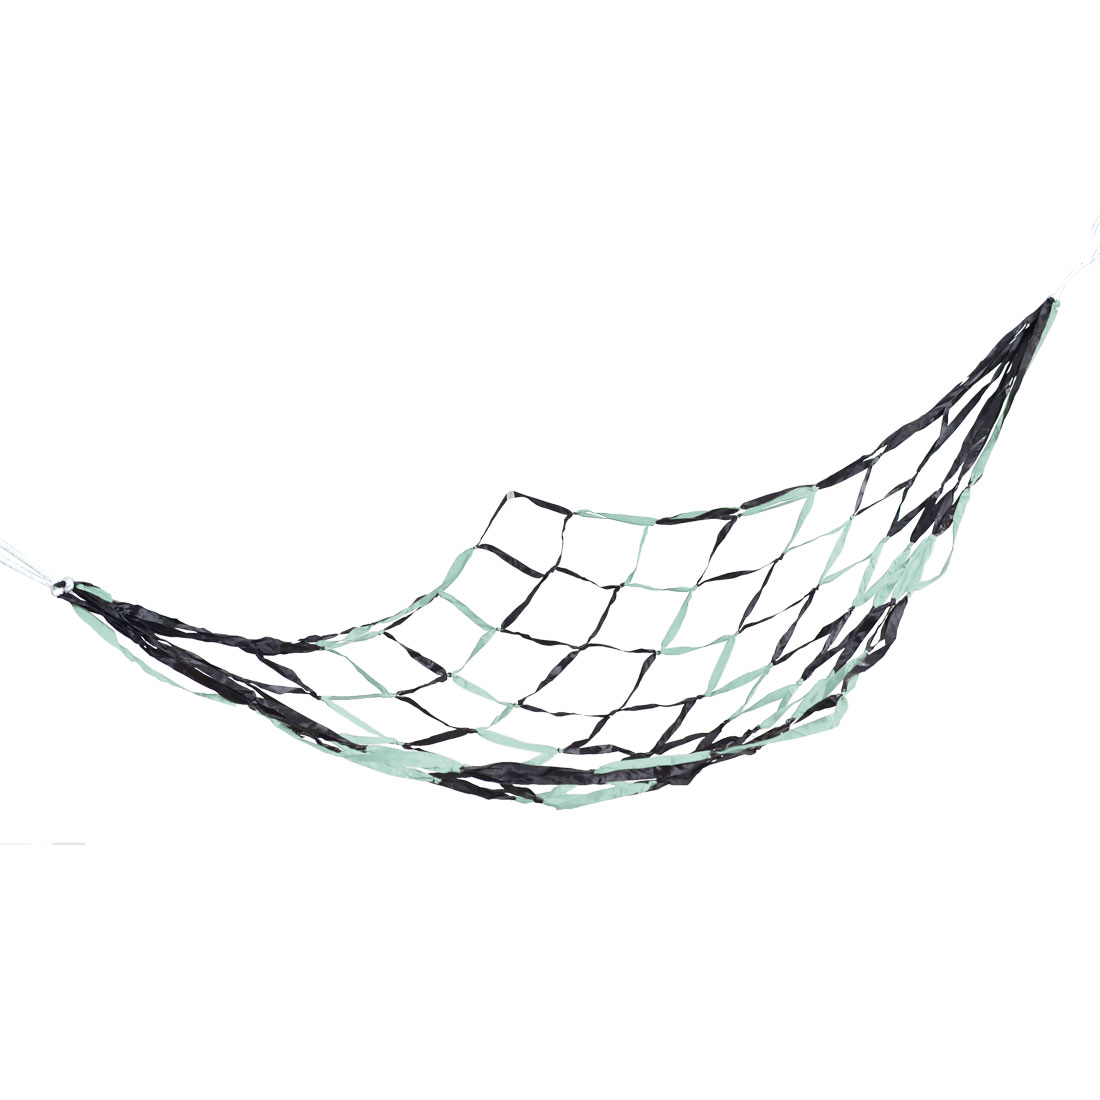 Outdoor Hiking Blue Black Polyester Netty Sleeping Bed Hammock 2.1M x 1.5M